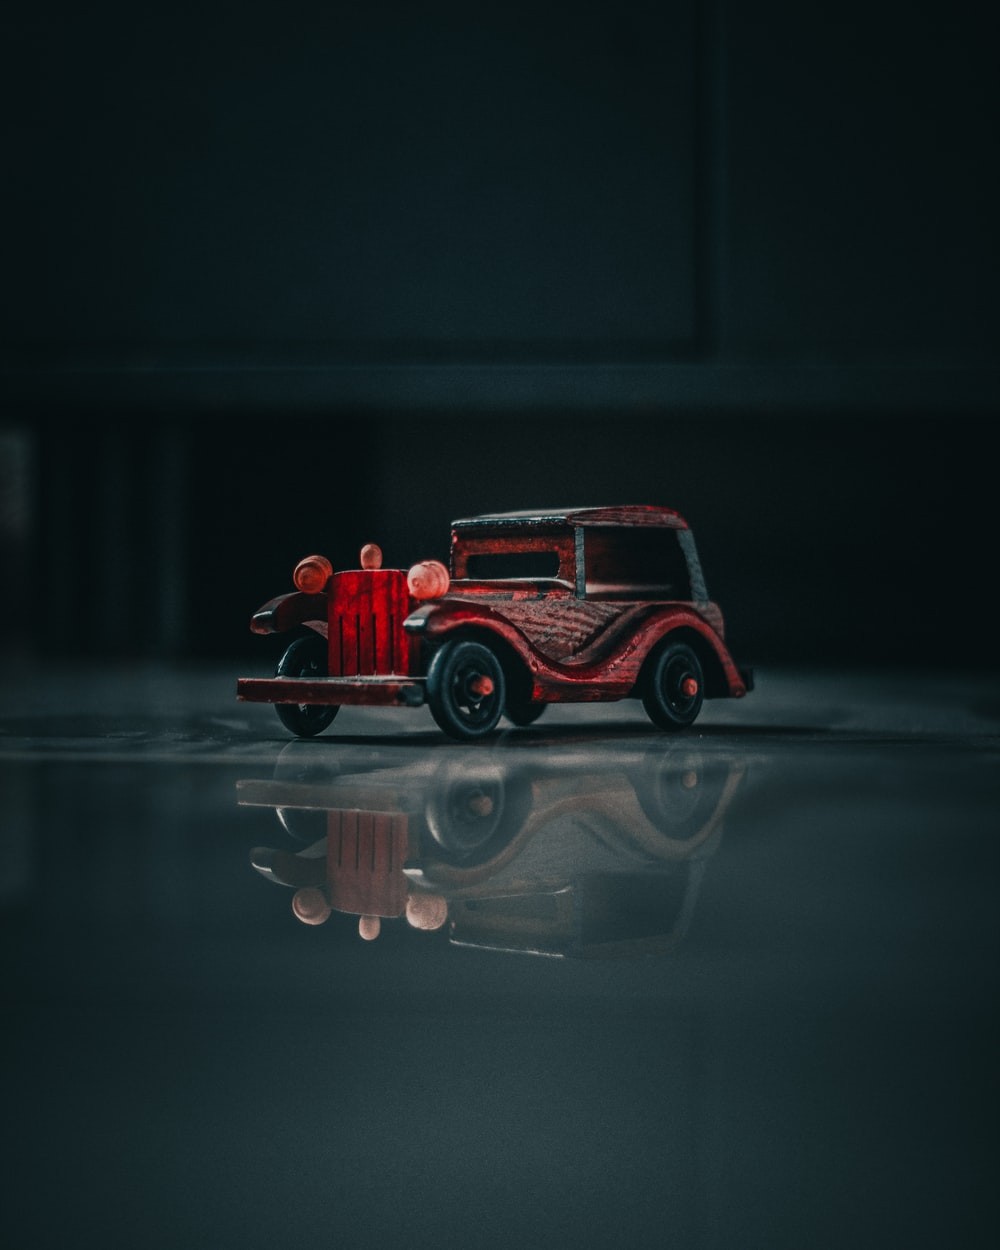 red and black vehicle scale model